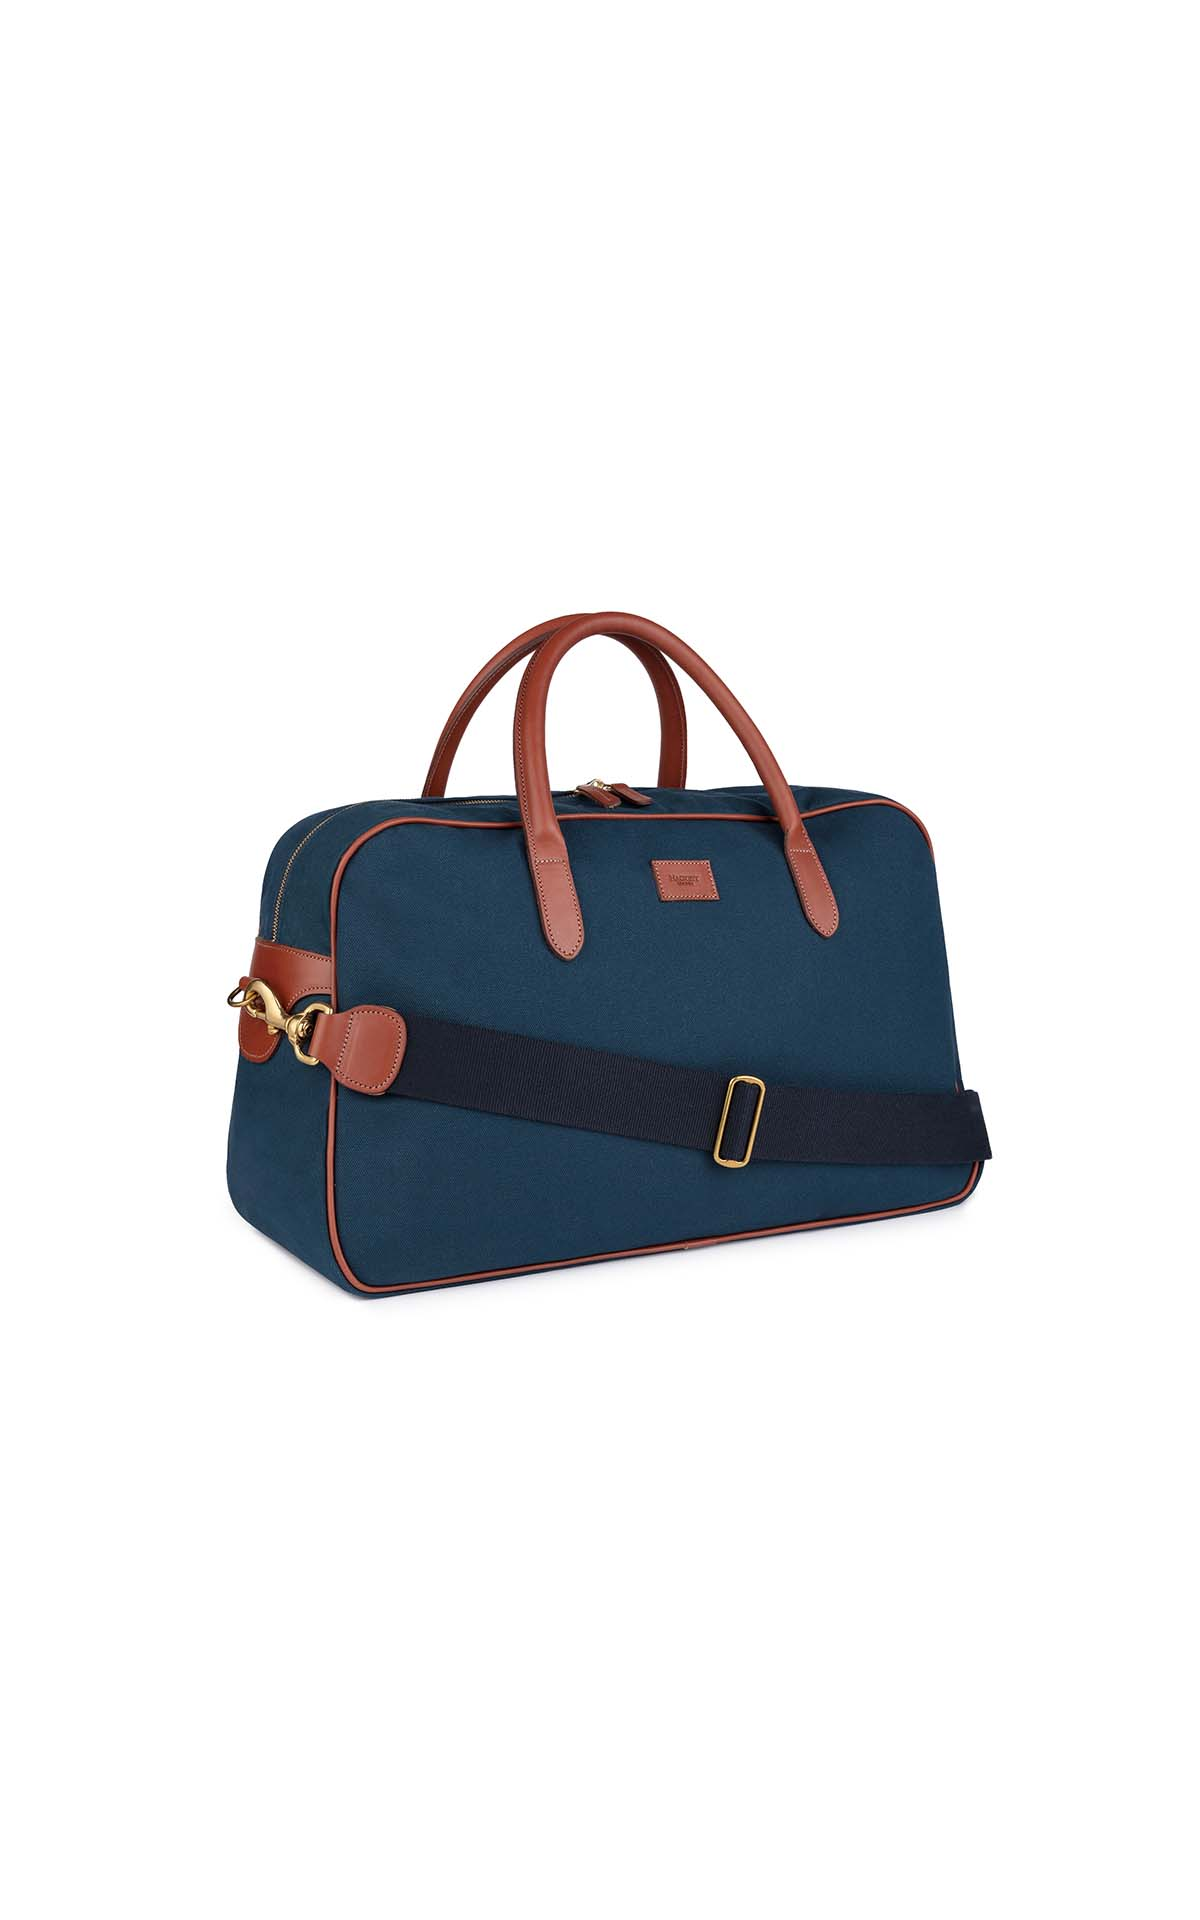 Hackett London sac de voyage Melbury